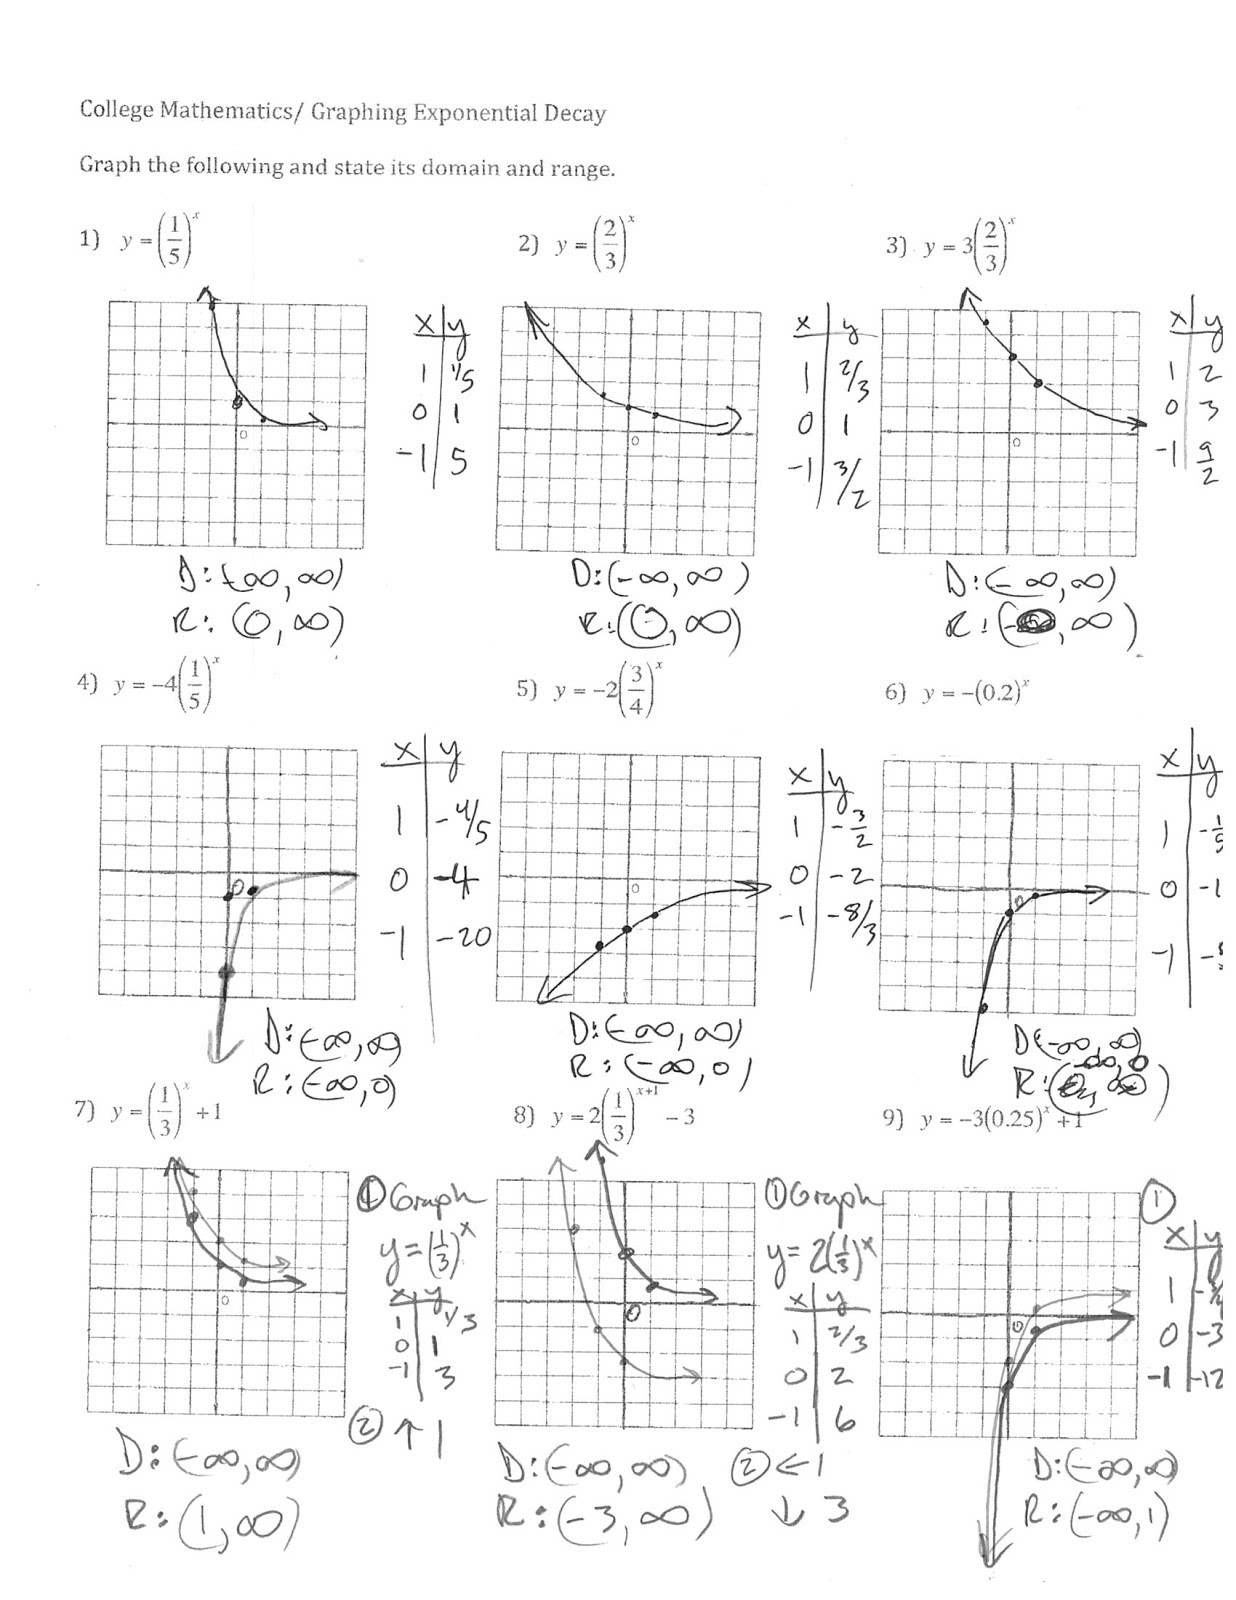 Graphing Exponential Functions Worksheet Answers the Best Free Graphing Drawing From Precalculus